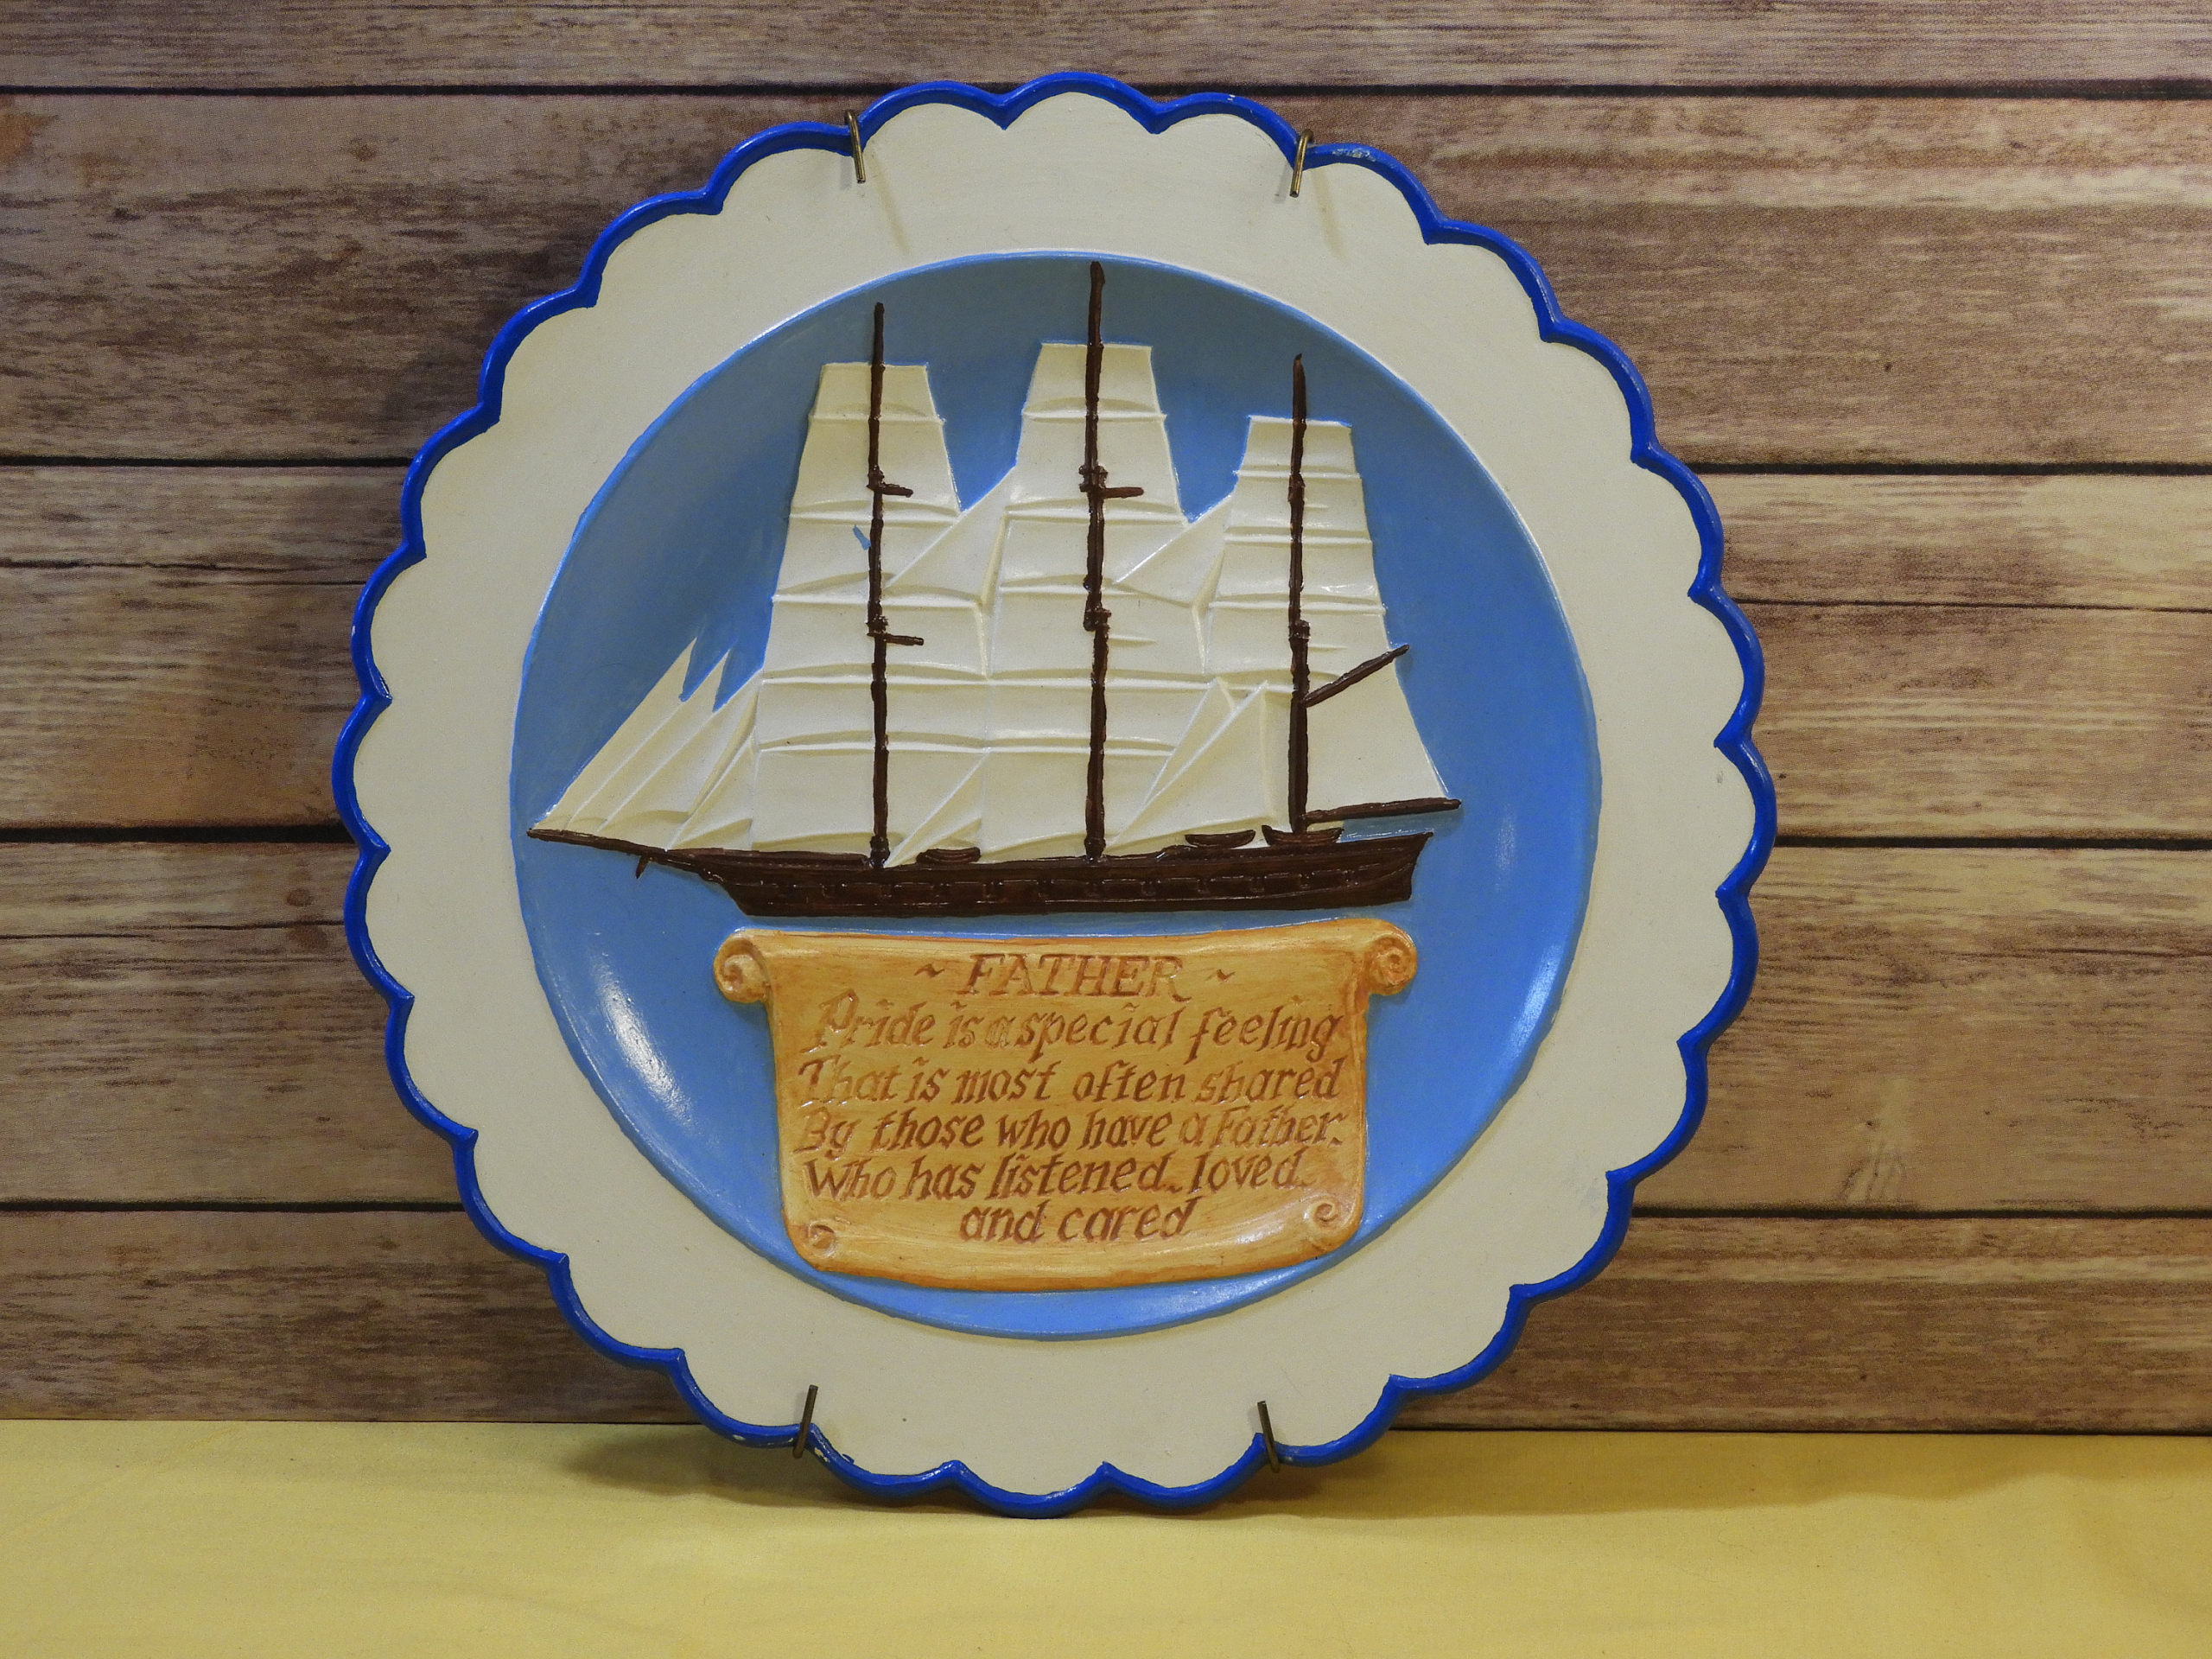 Vintage Fathers Day Art Nautical Theme Decor Schooner Ship Decoration Blue White Ceramic Wall Plate Round Decorative Wall Hanging Schooner Chandlery